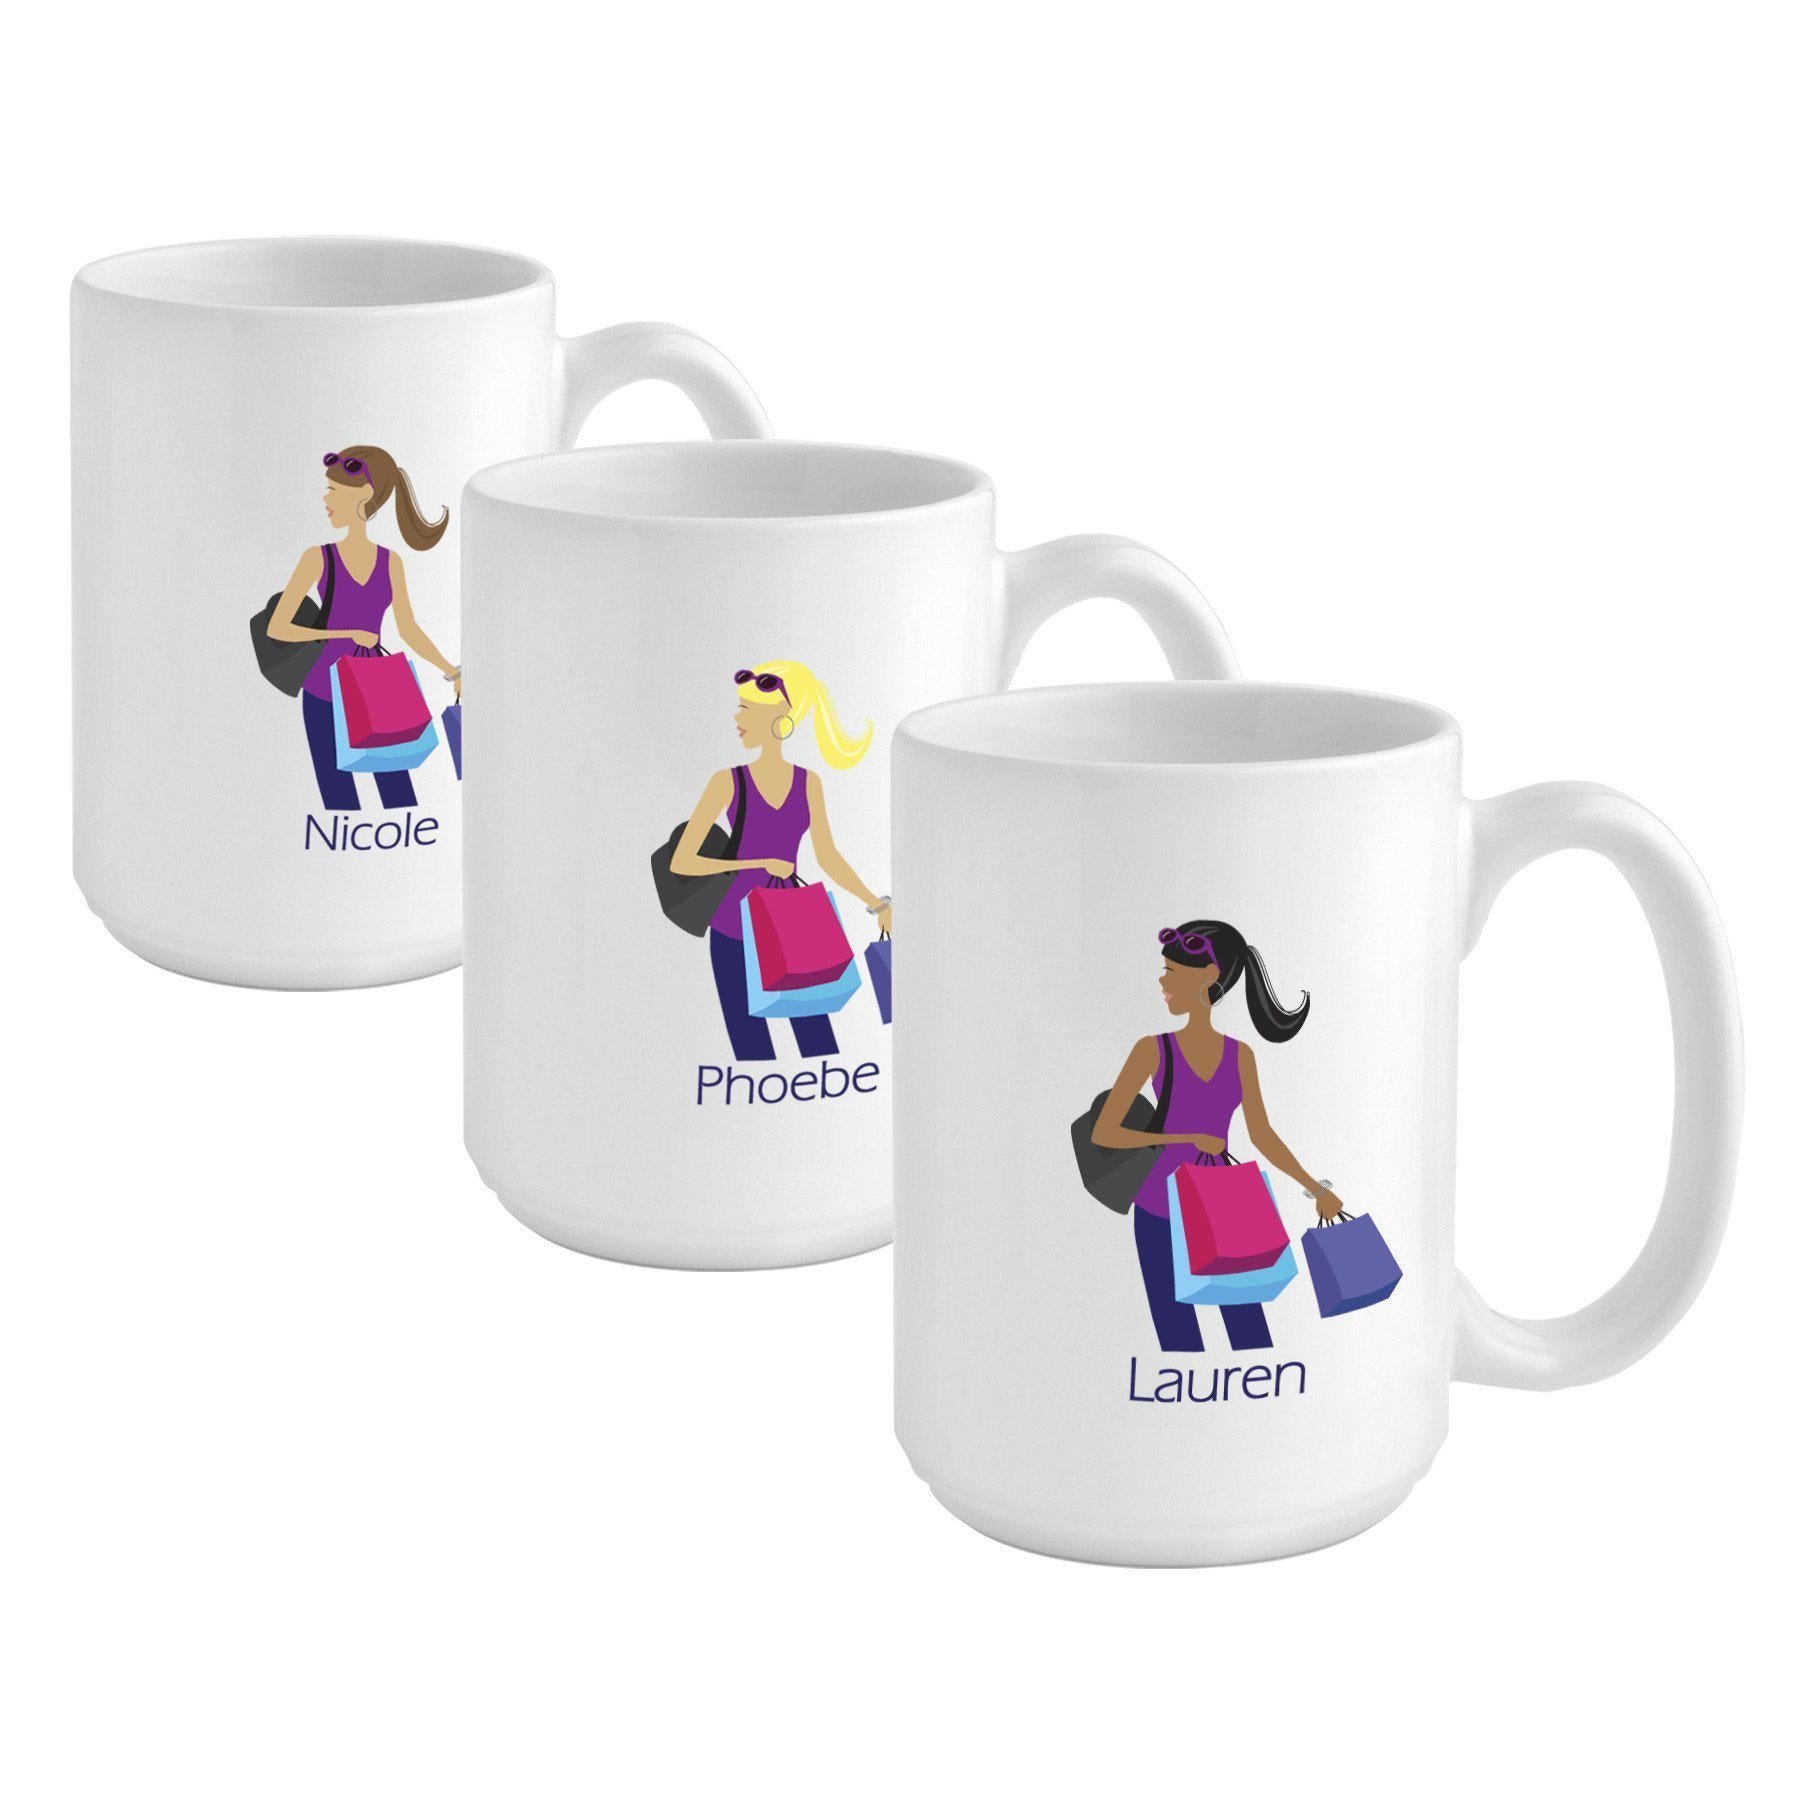 Personalized-Go-Girl-Coffee-Mug-Golfer-Runner-Shopper-Yoga